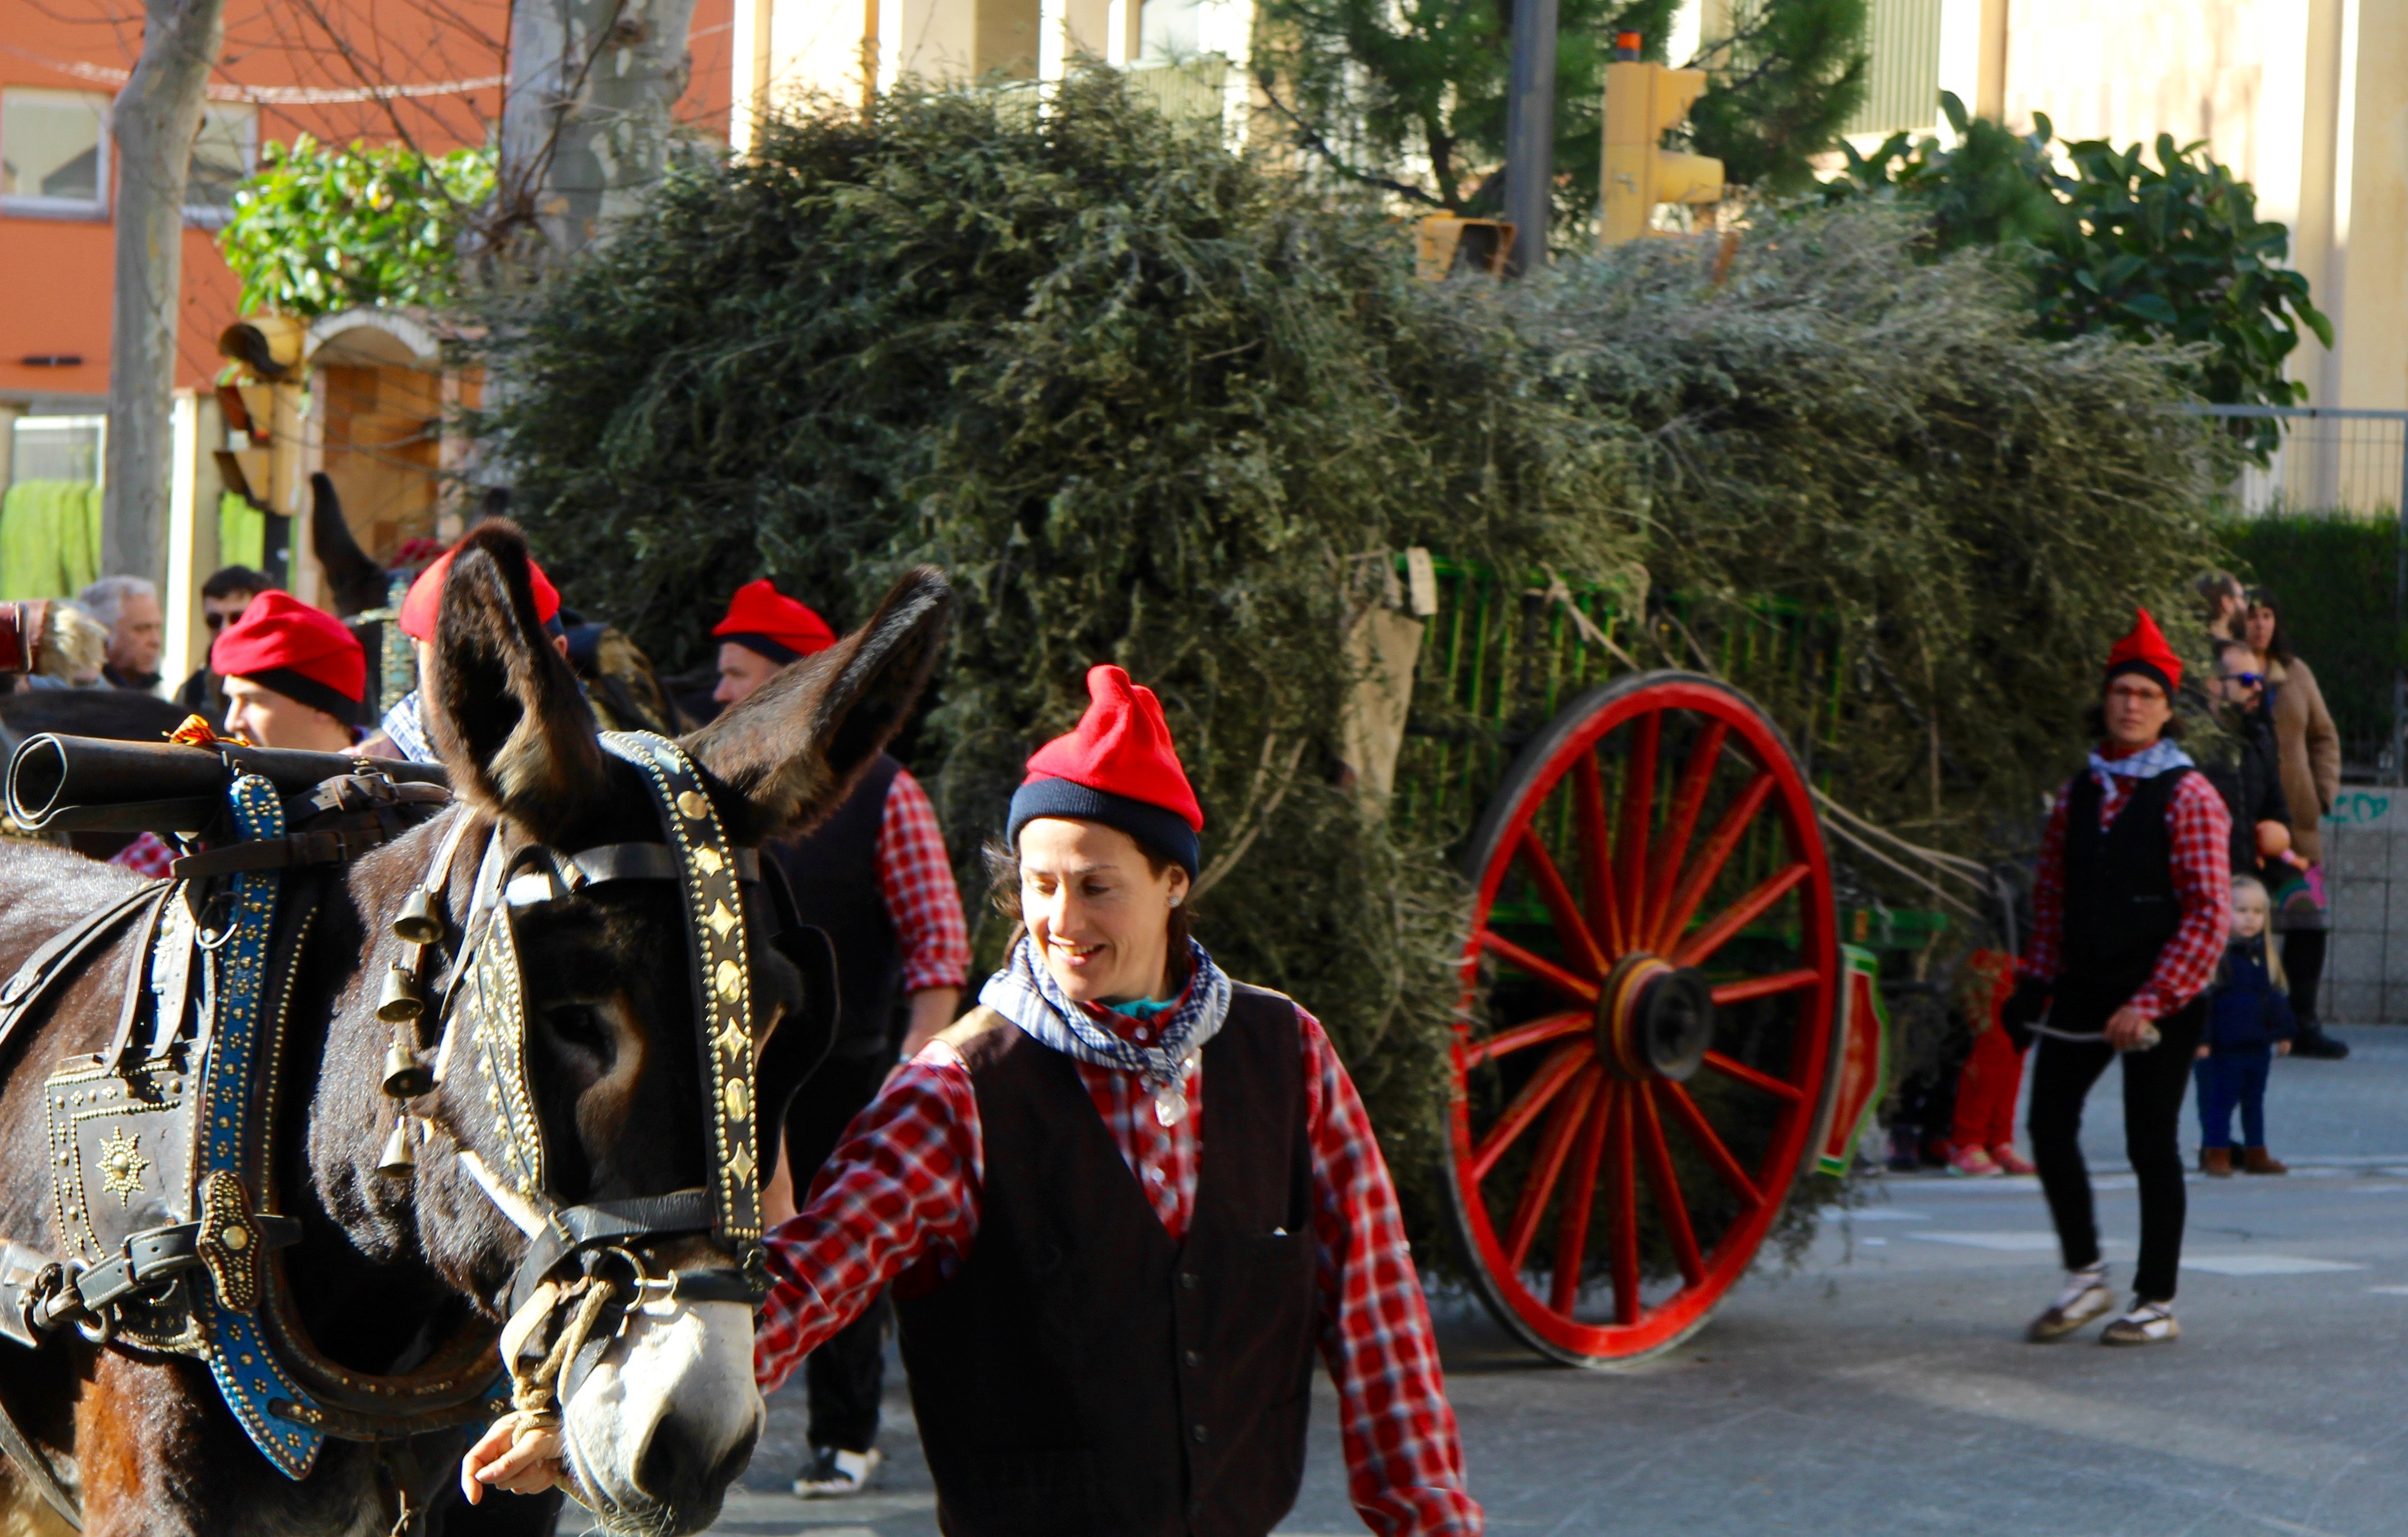 A horse pulling a cart of hay at in a procession